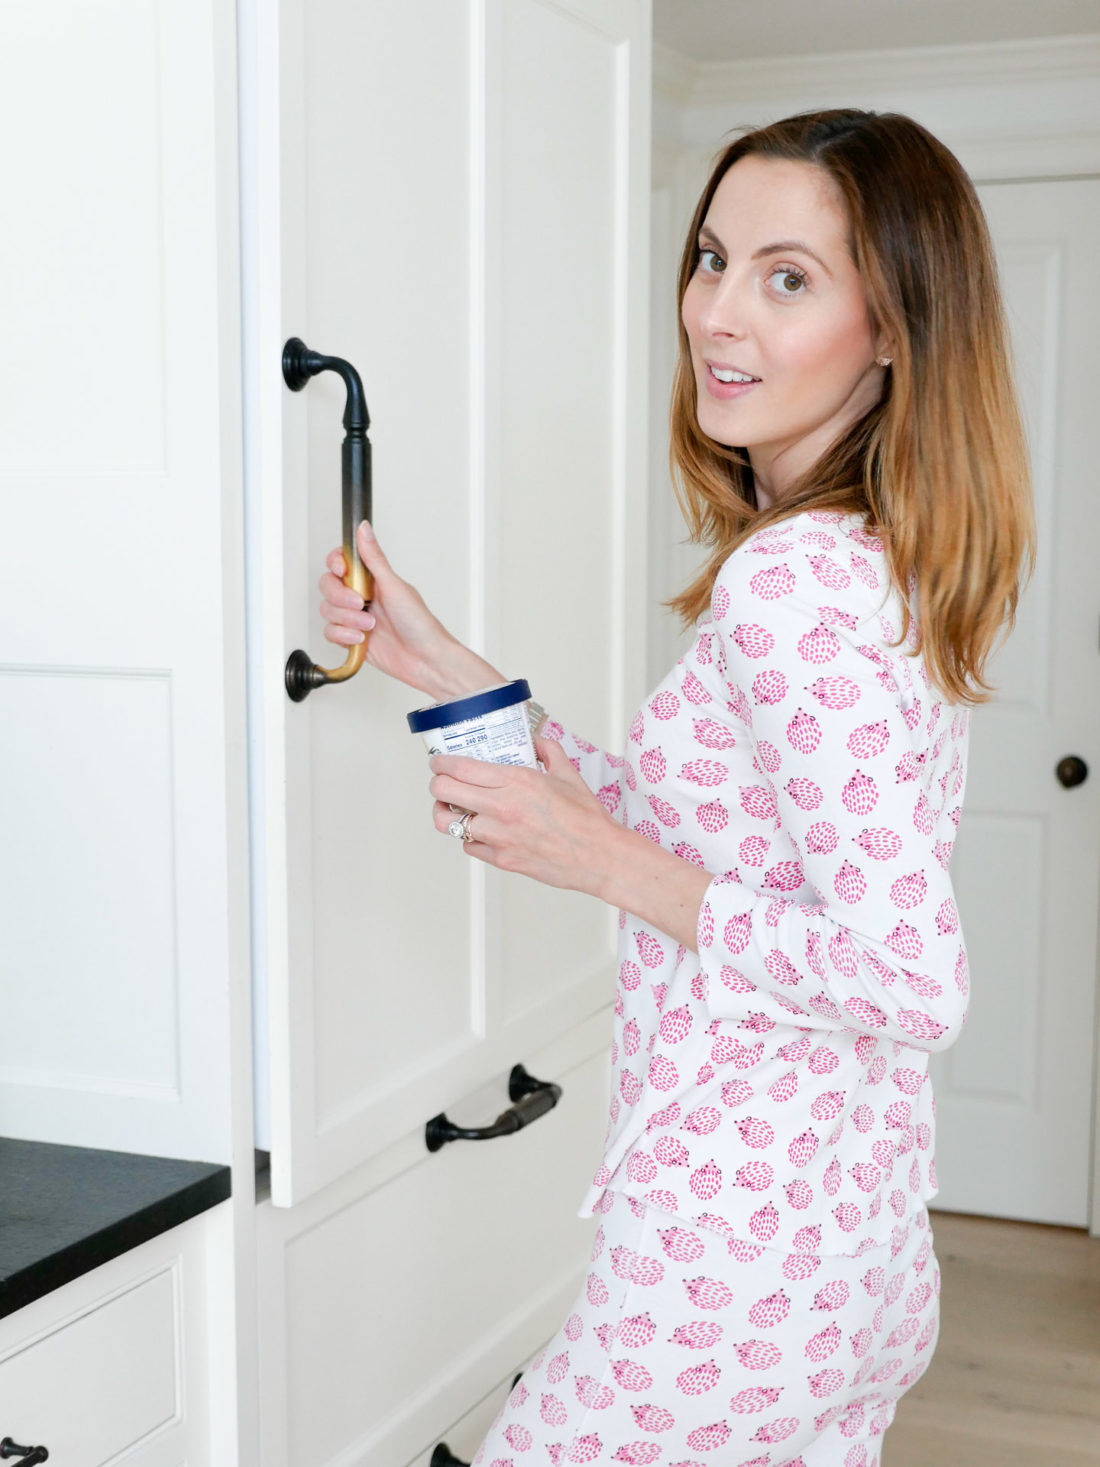 Eva Amurri Martino sets her prepared quaker overnight oats in the fridge to cold steep